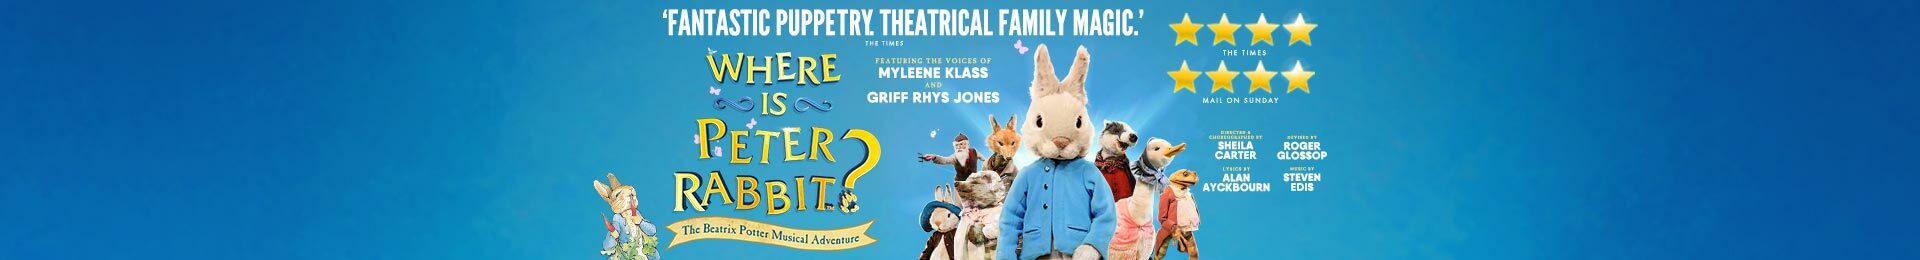 Where is Peter Rabbit? banner image